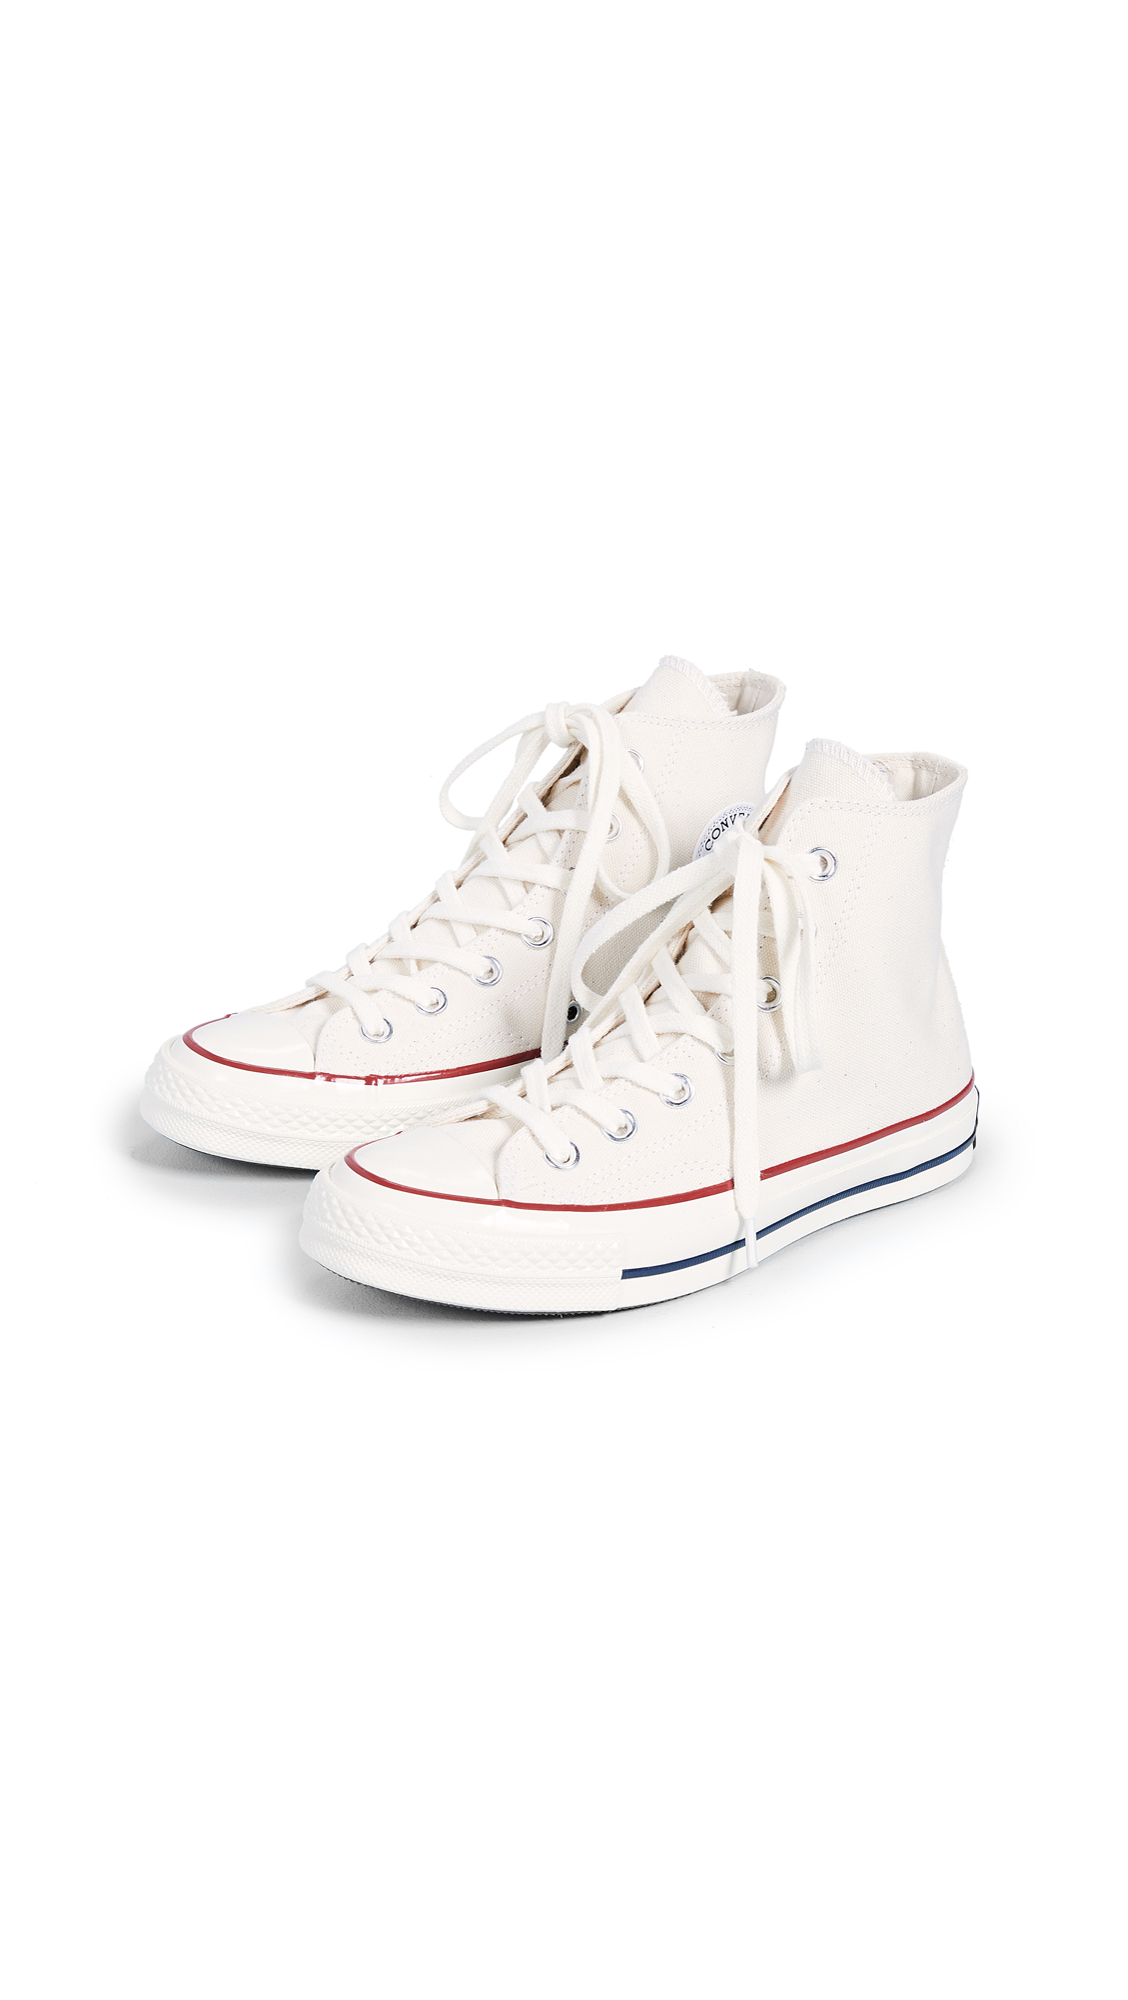 Converse All Star 70s High Top Sneakers - Parchment